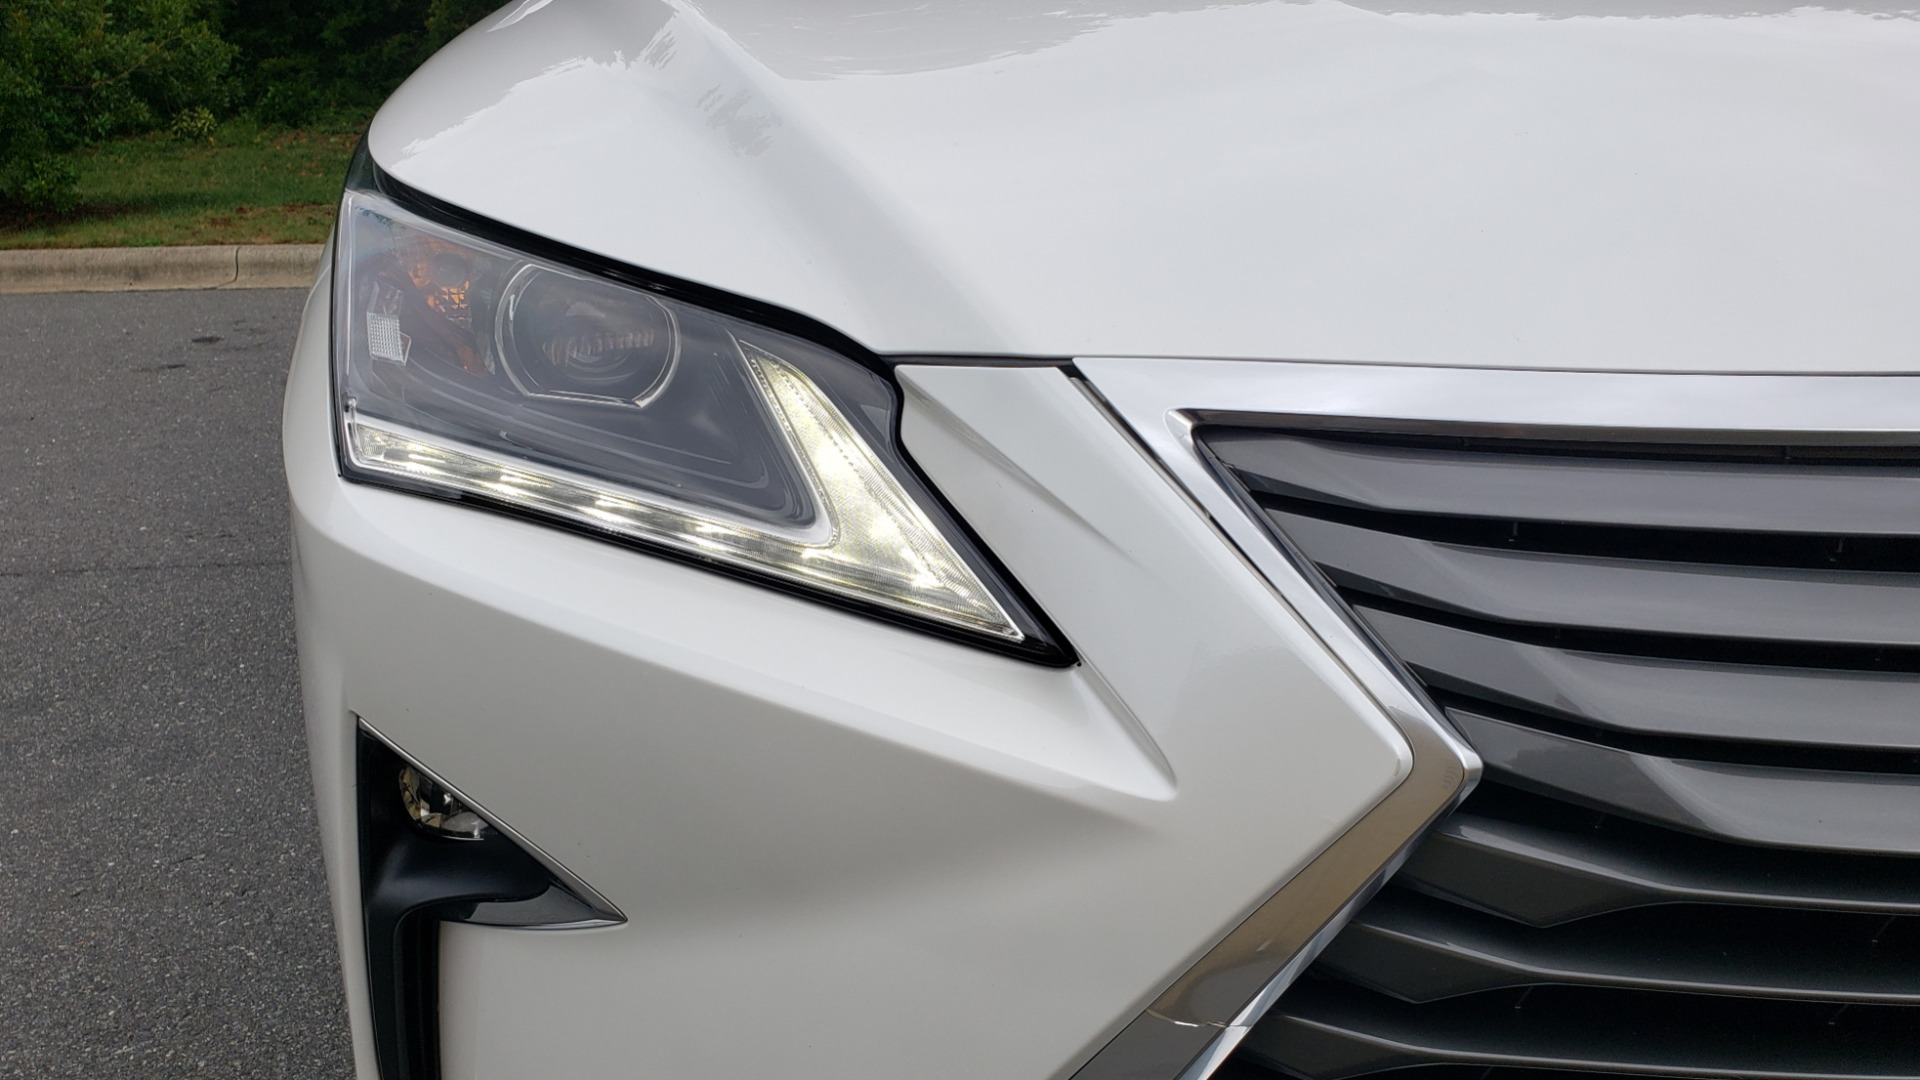 Used 2016 Lexus RX 350 FWD / 4-DR / 3.5L V6 / 8-SPD AUTO / LEATHER / REARVIEW for sale $31,995 at Formula Imports in Charlotte NC 28227 24